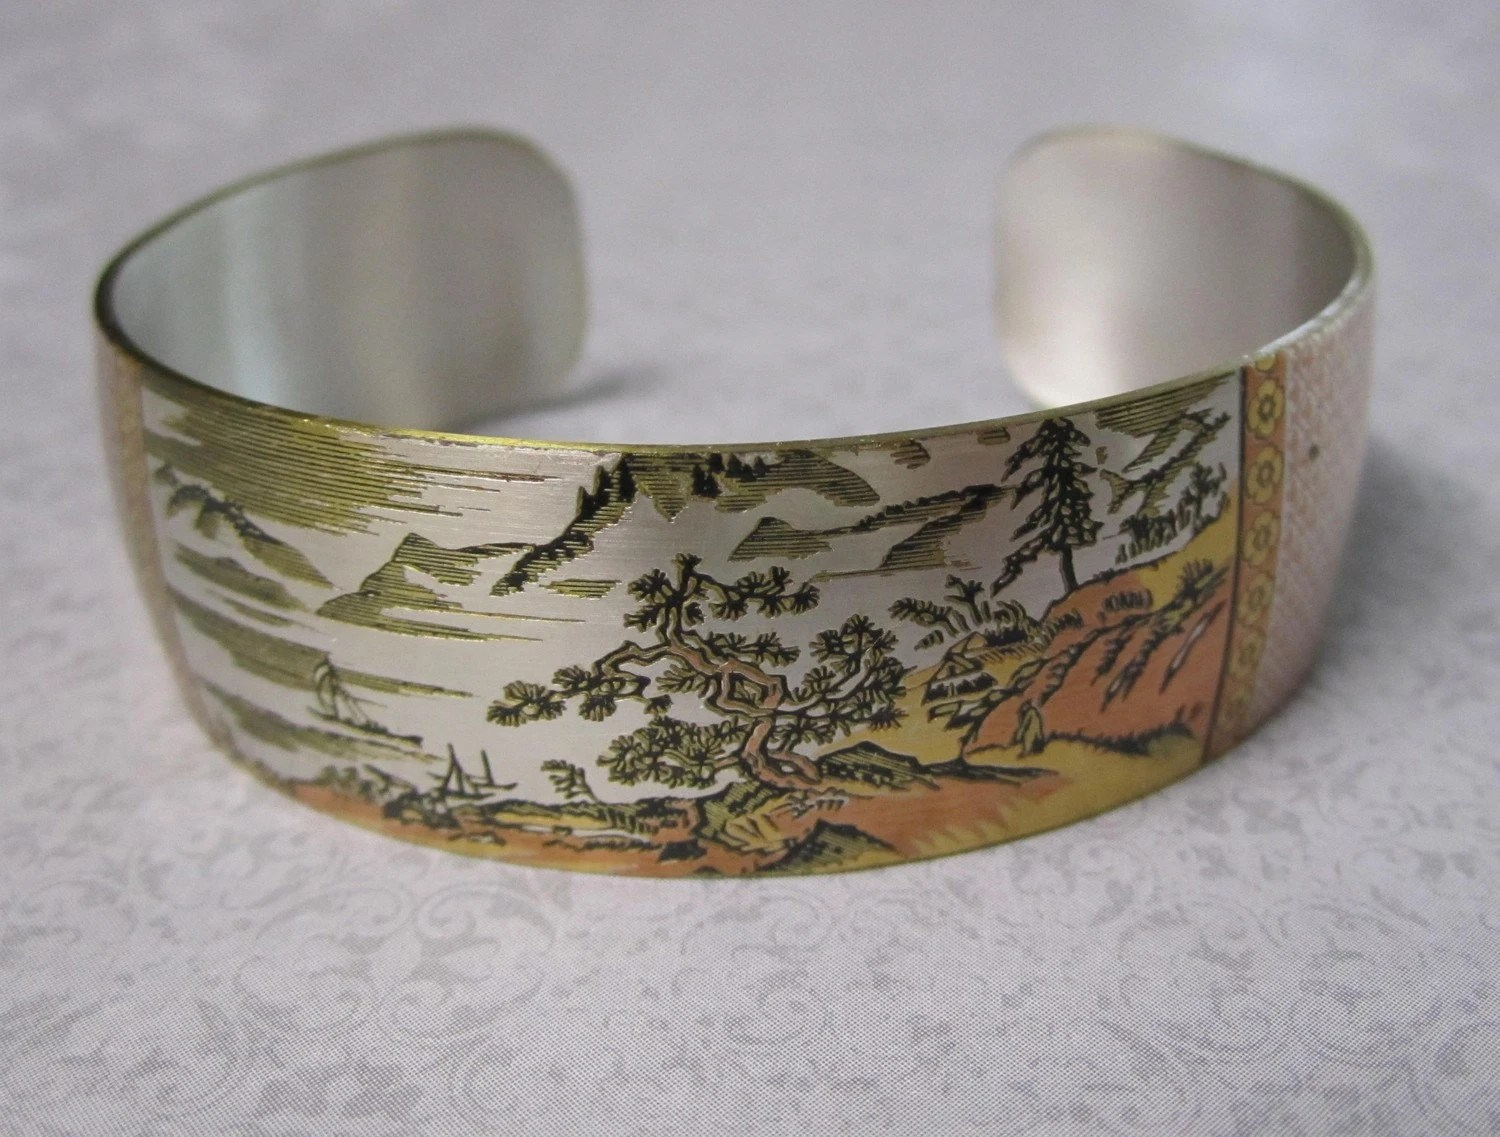 Vintage Reed and Barton Damascene Chinese Landscape Cuff Bracelet Mint Never Worn